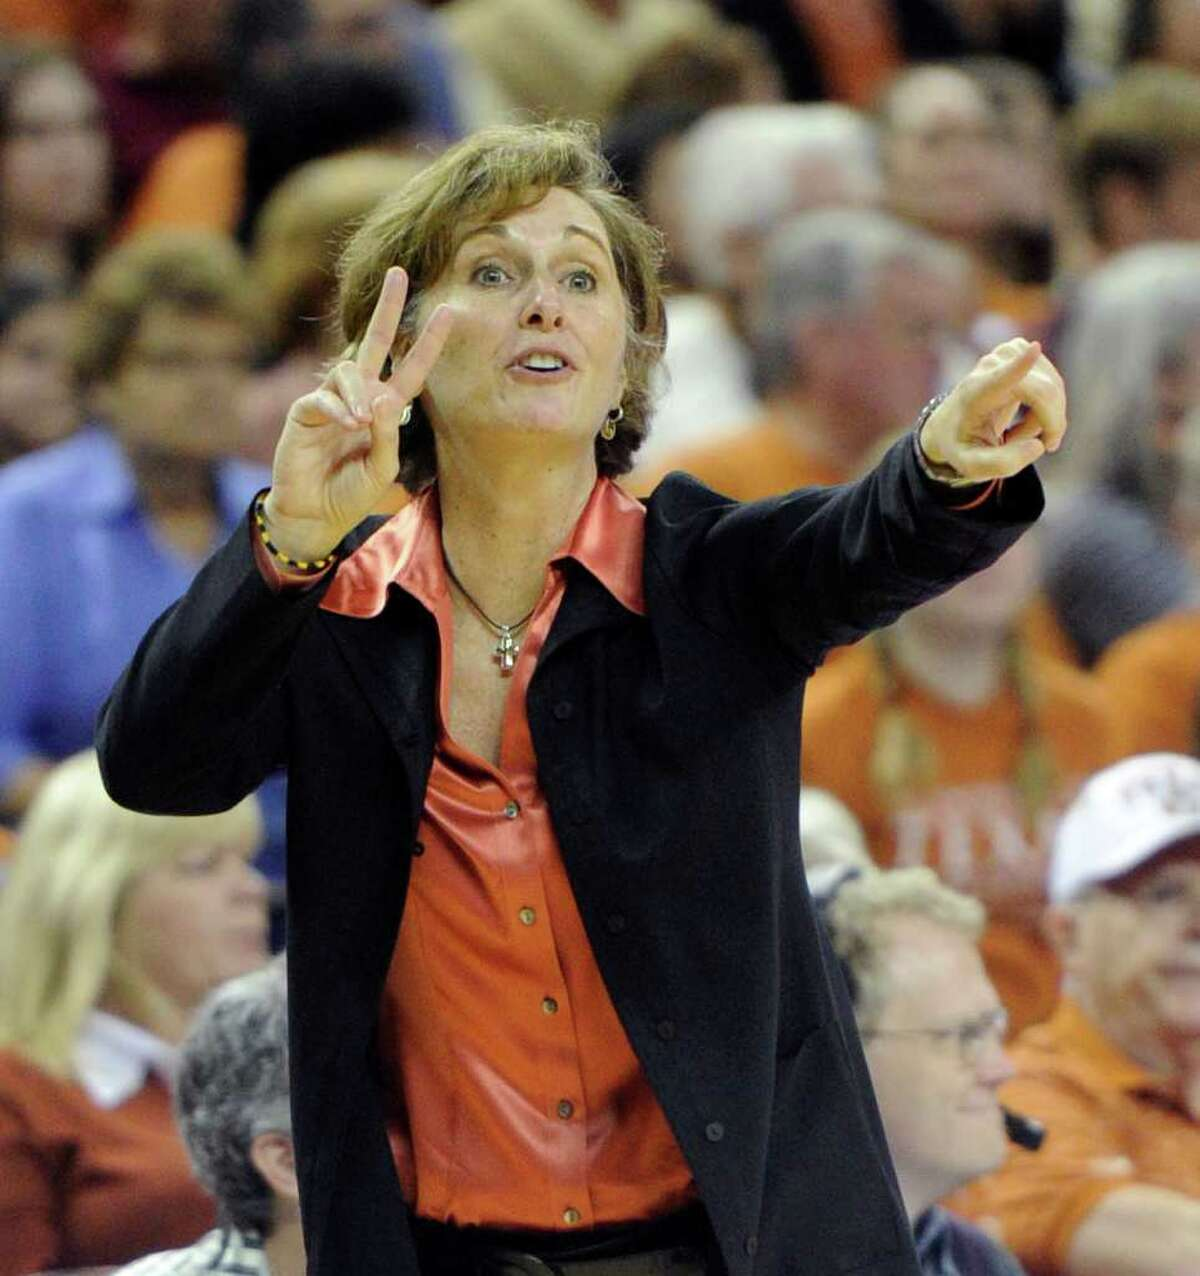 Texas women's basketball coach Gail Goestenkors directs her team against Texas A&M during the second half of an NCAA college basketball game Sunday, Feb. 27, 2011, in Austin, Texas. Texas A&M won 68-65.